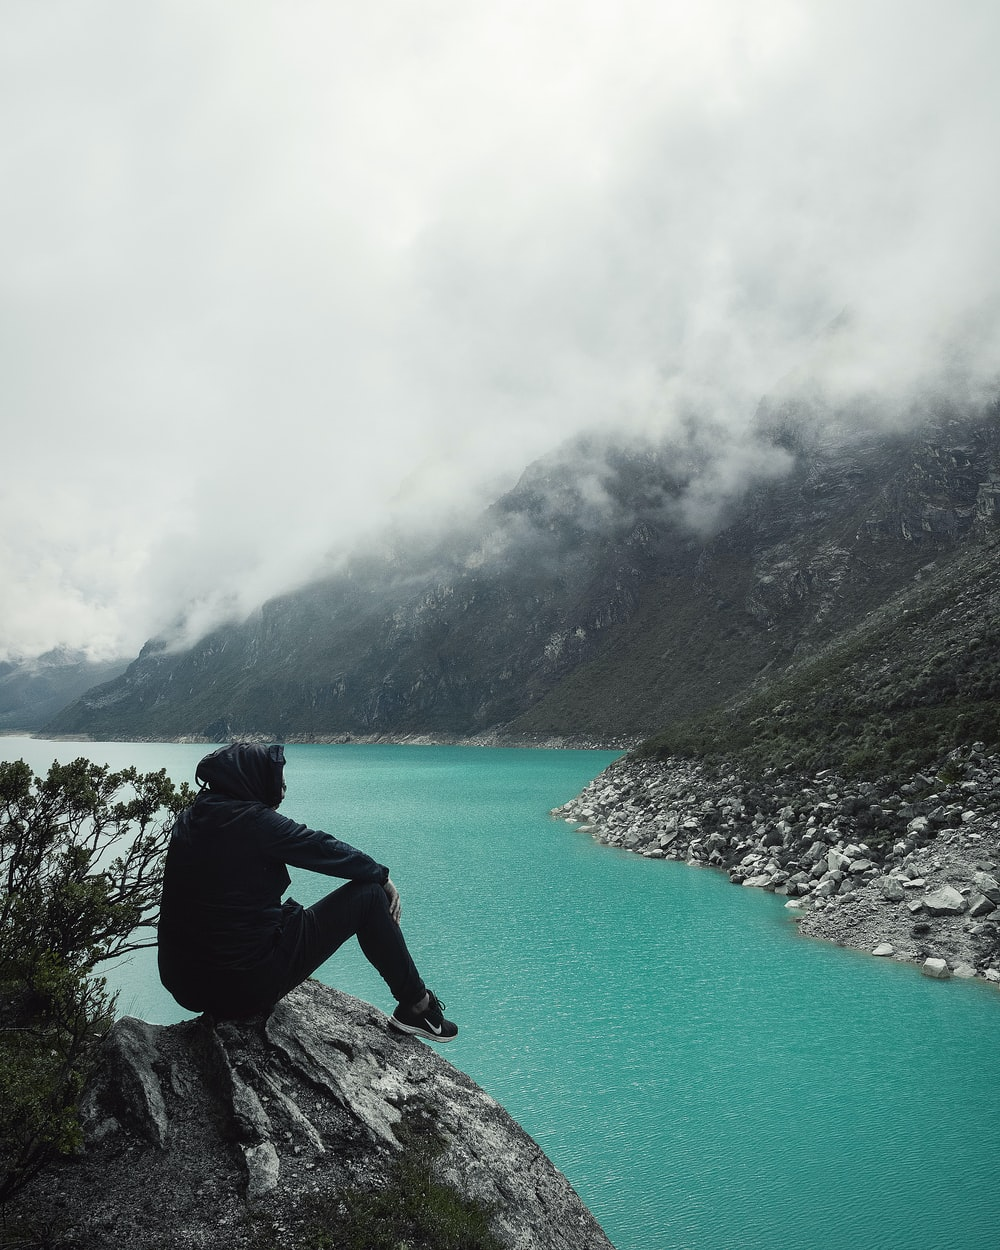 person sitting on cliff with overlooking lake